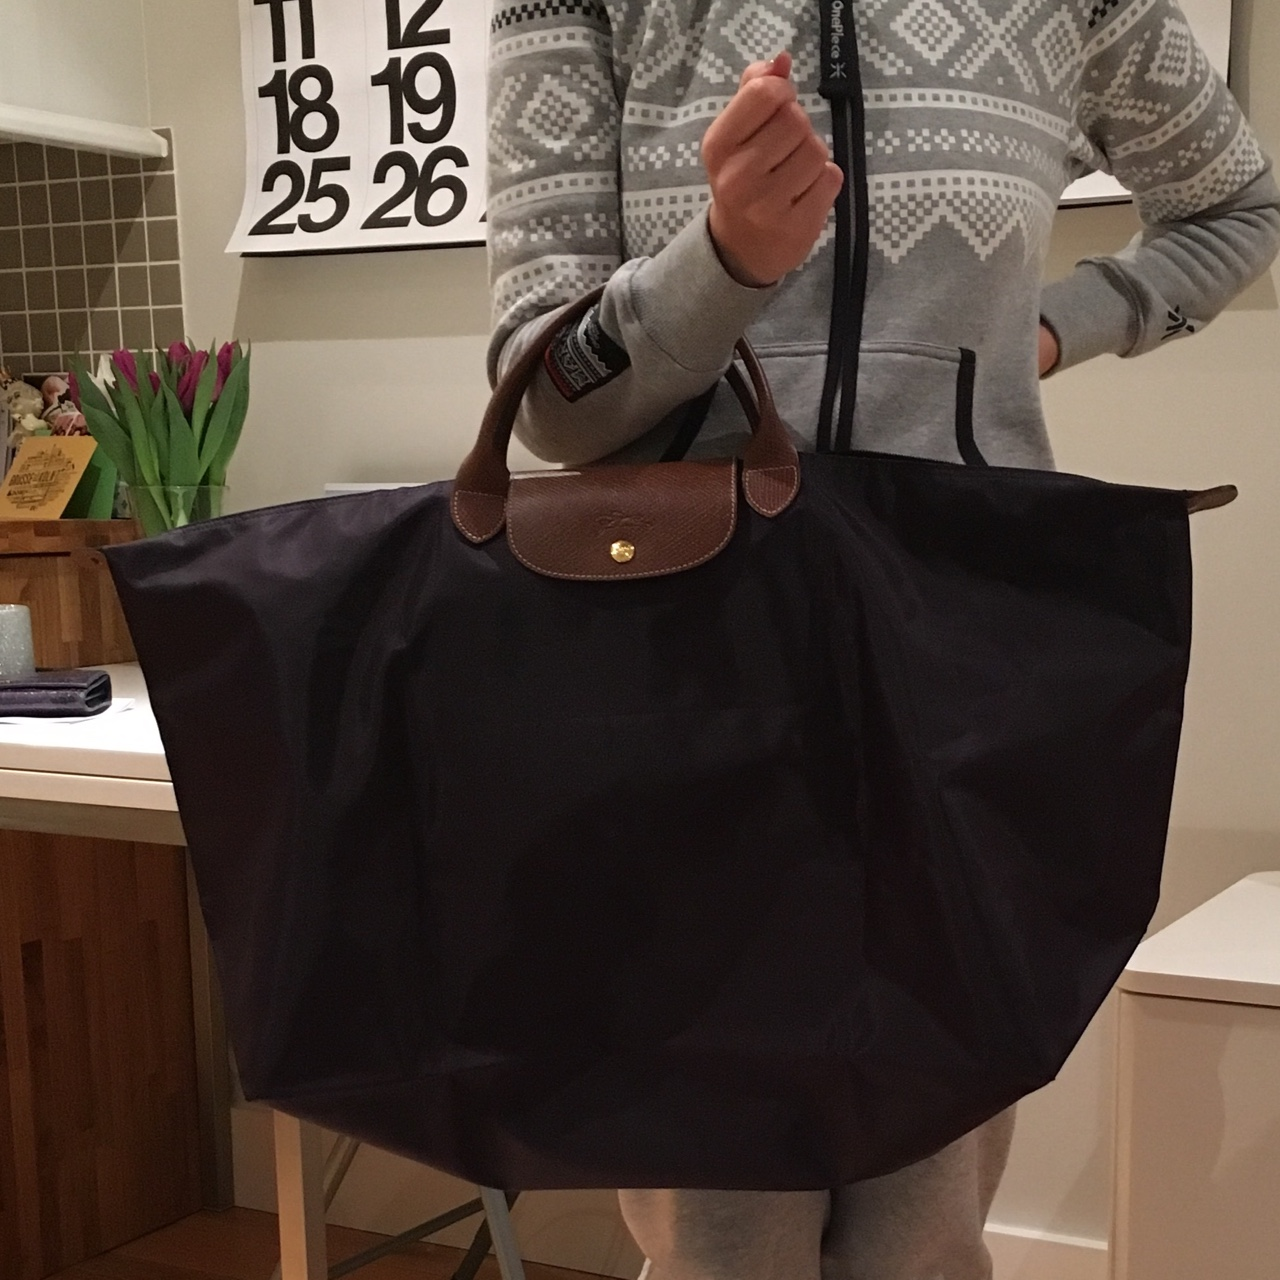 Purchase > longchamp pliage xl travel bag, Up to 78% OFF